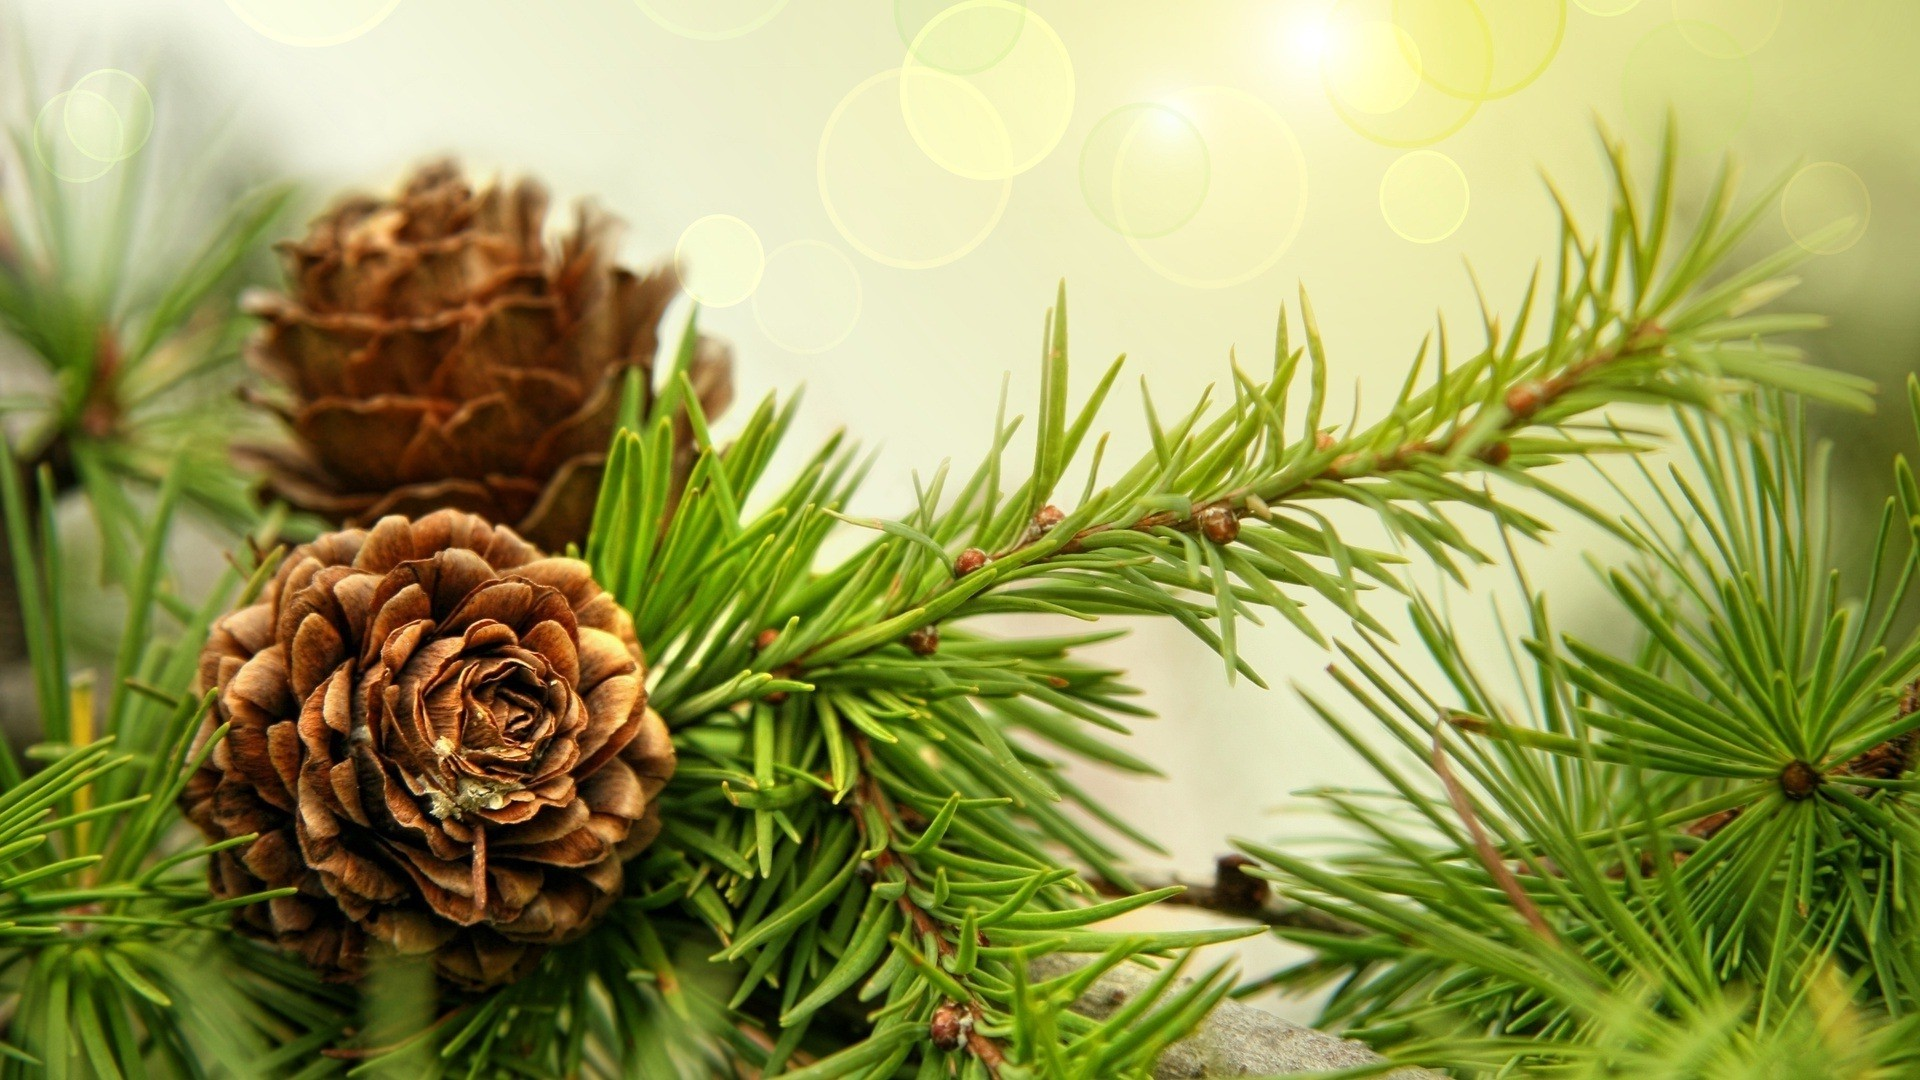 Pine Tree Wallpaper